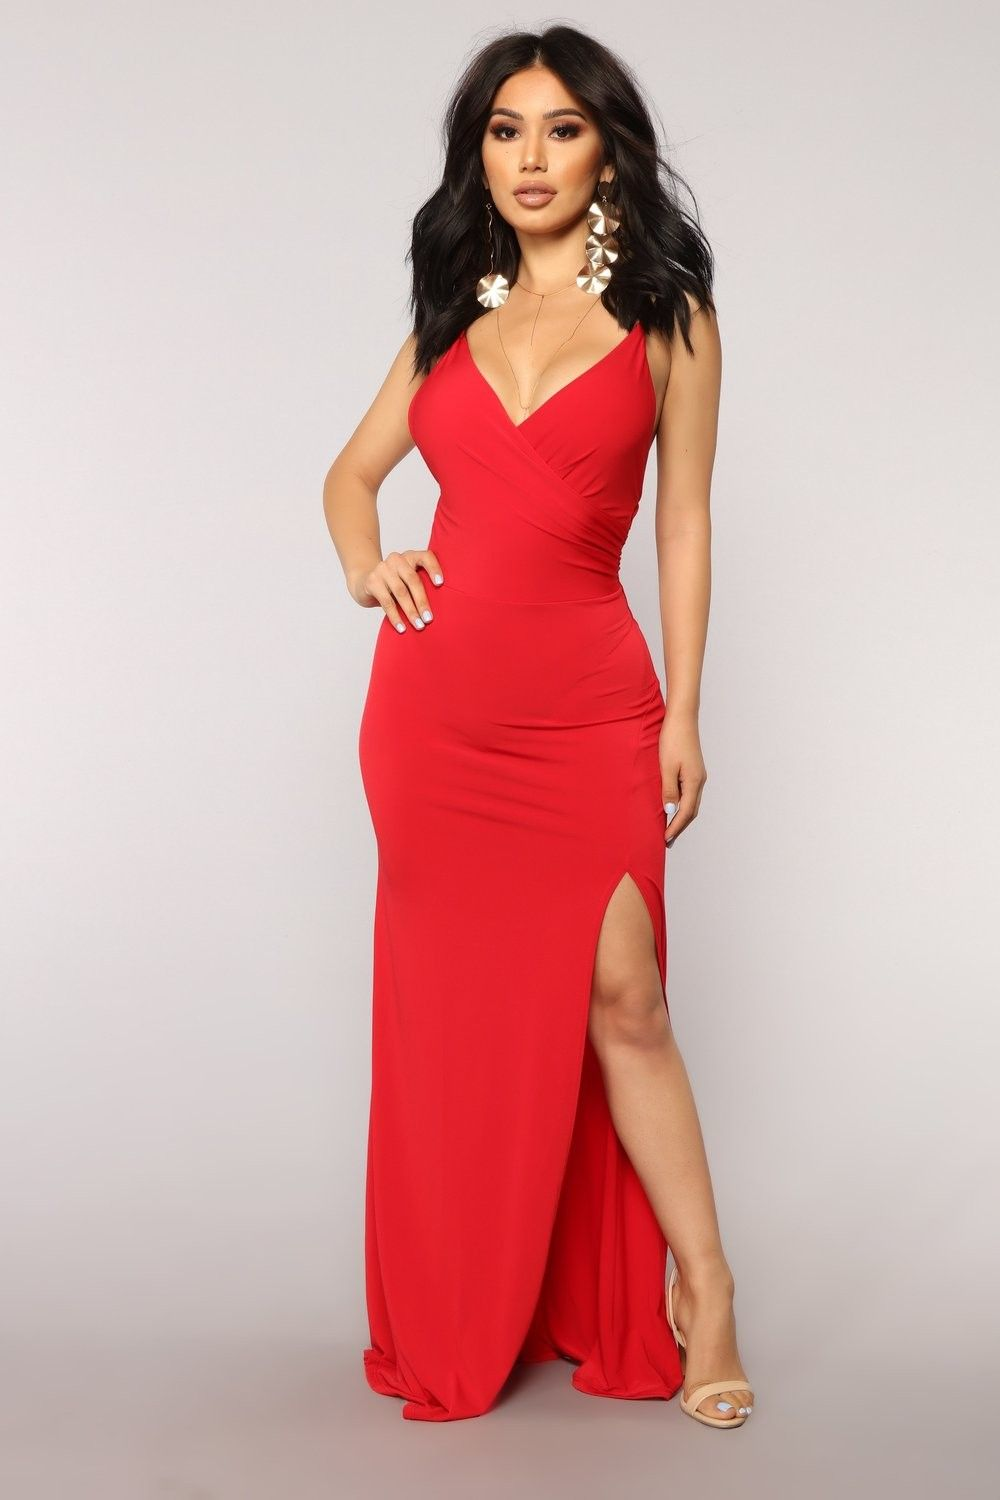 Red Dress Fashion Nova | Red dress maxi